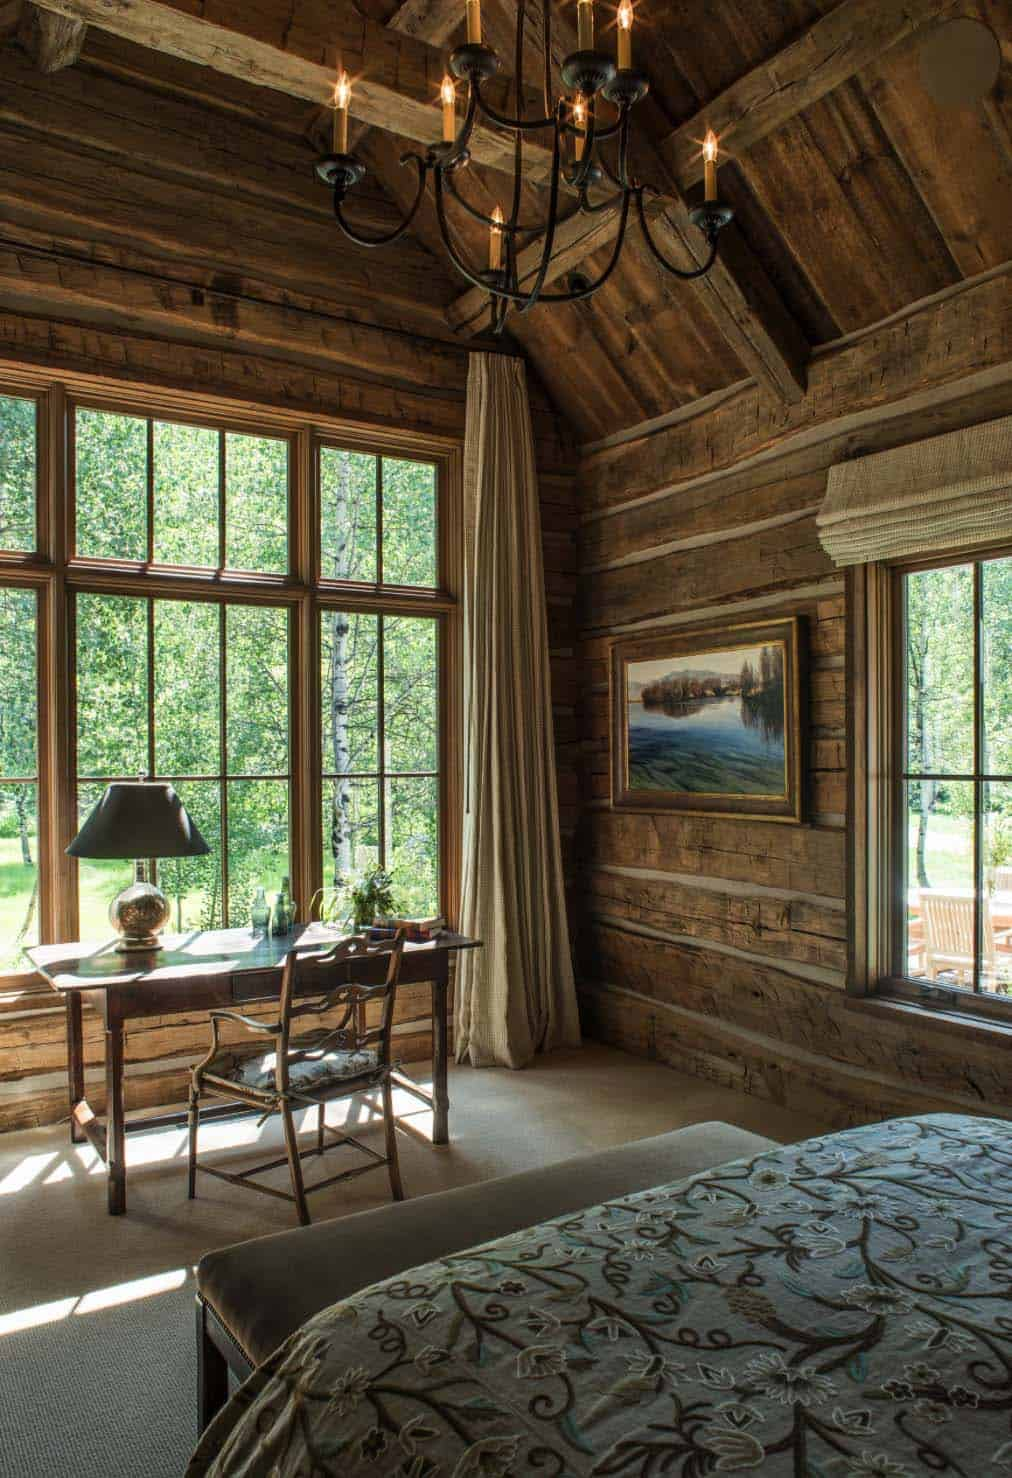 Wood River Valley Chalet-Miller Architects-07-1 Kindesign